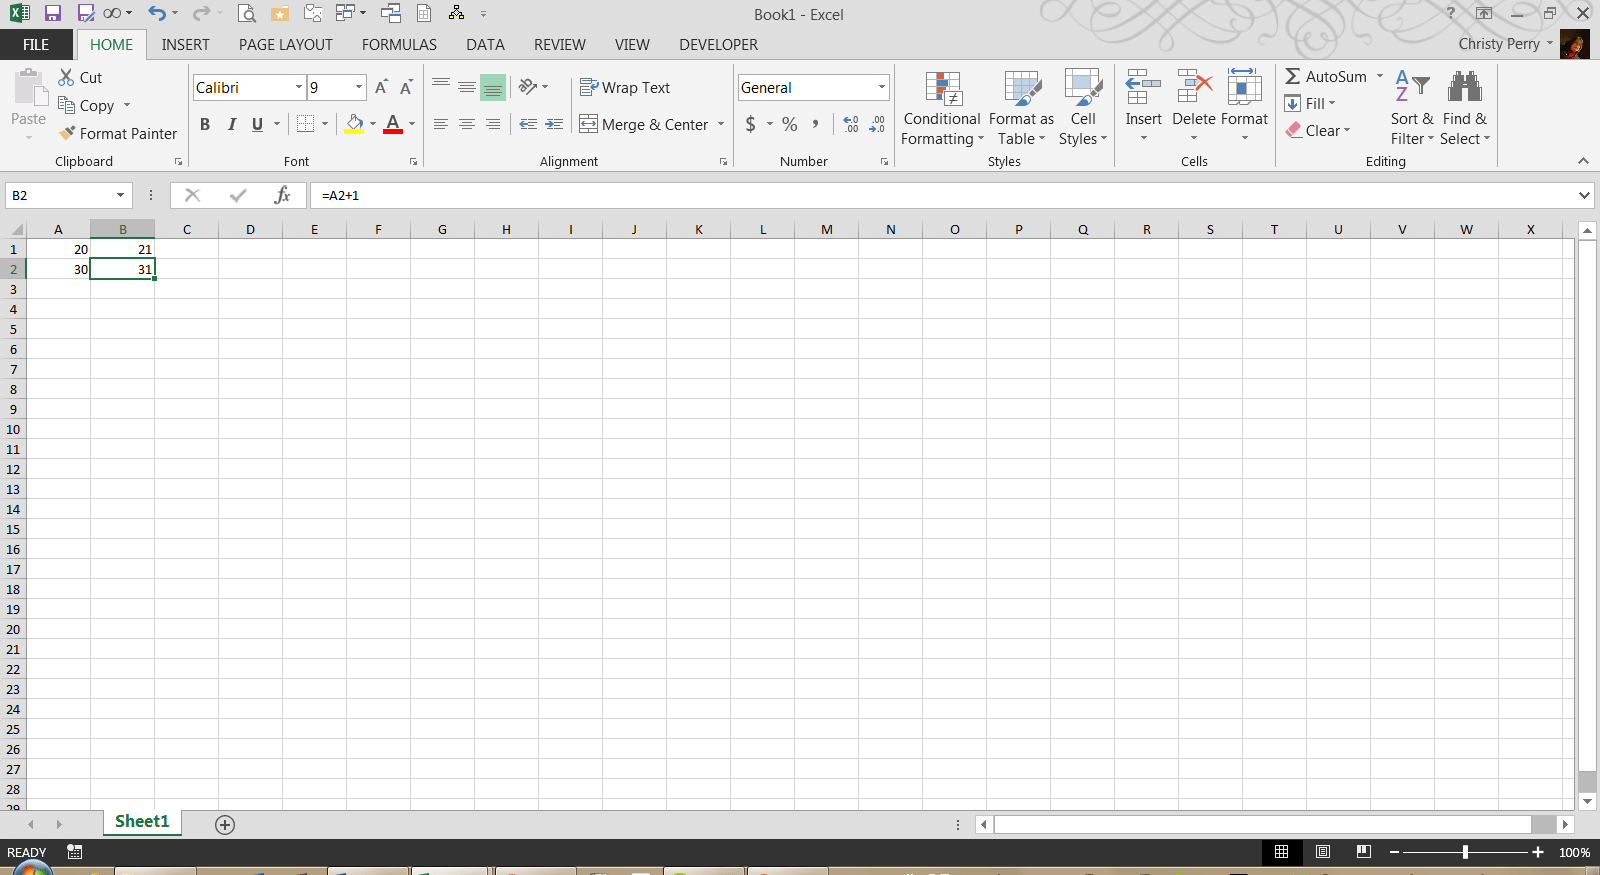 Excel Formula References Why Copying Formulas Sometimes